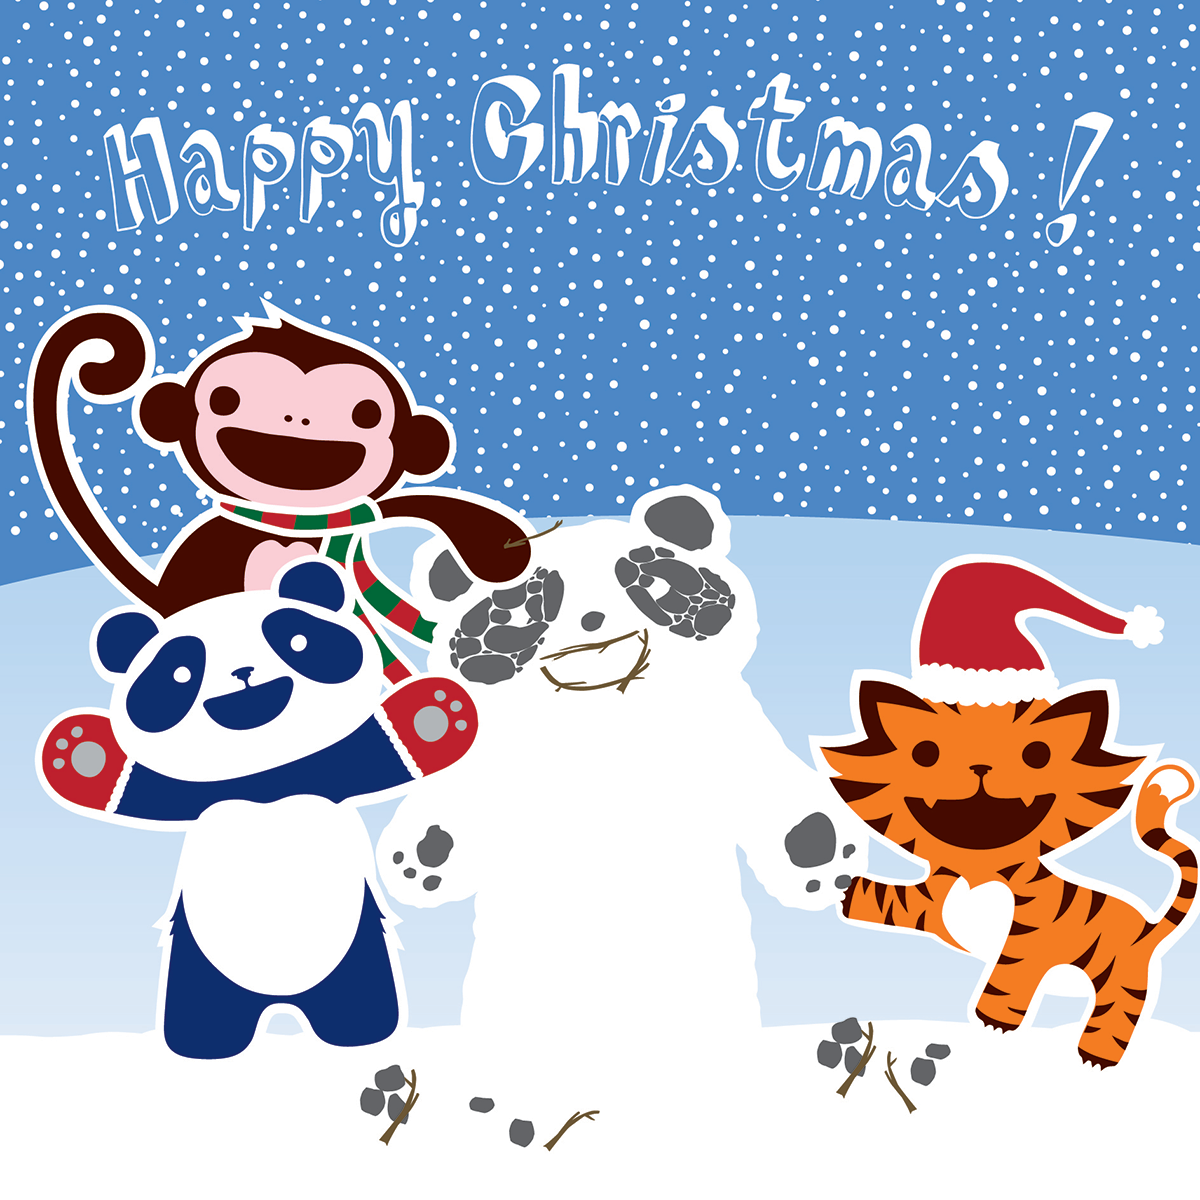 Pack of 10 140mm x 140mm WWF Fun in the Snow Christmas cards with ...